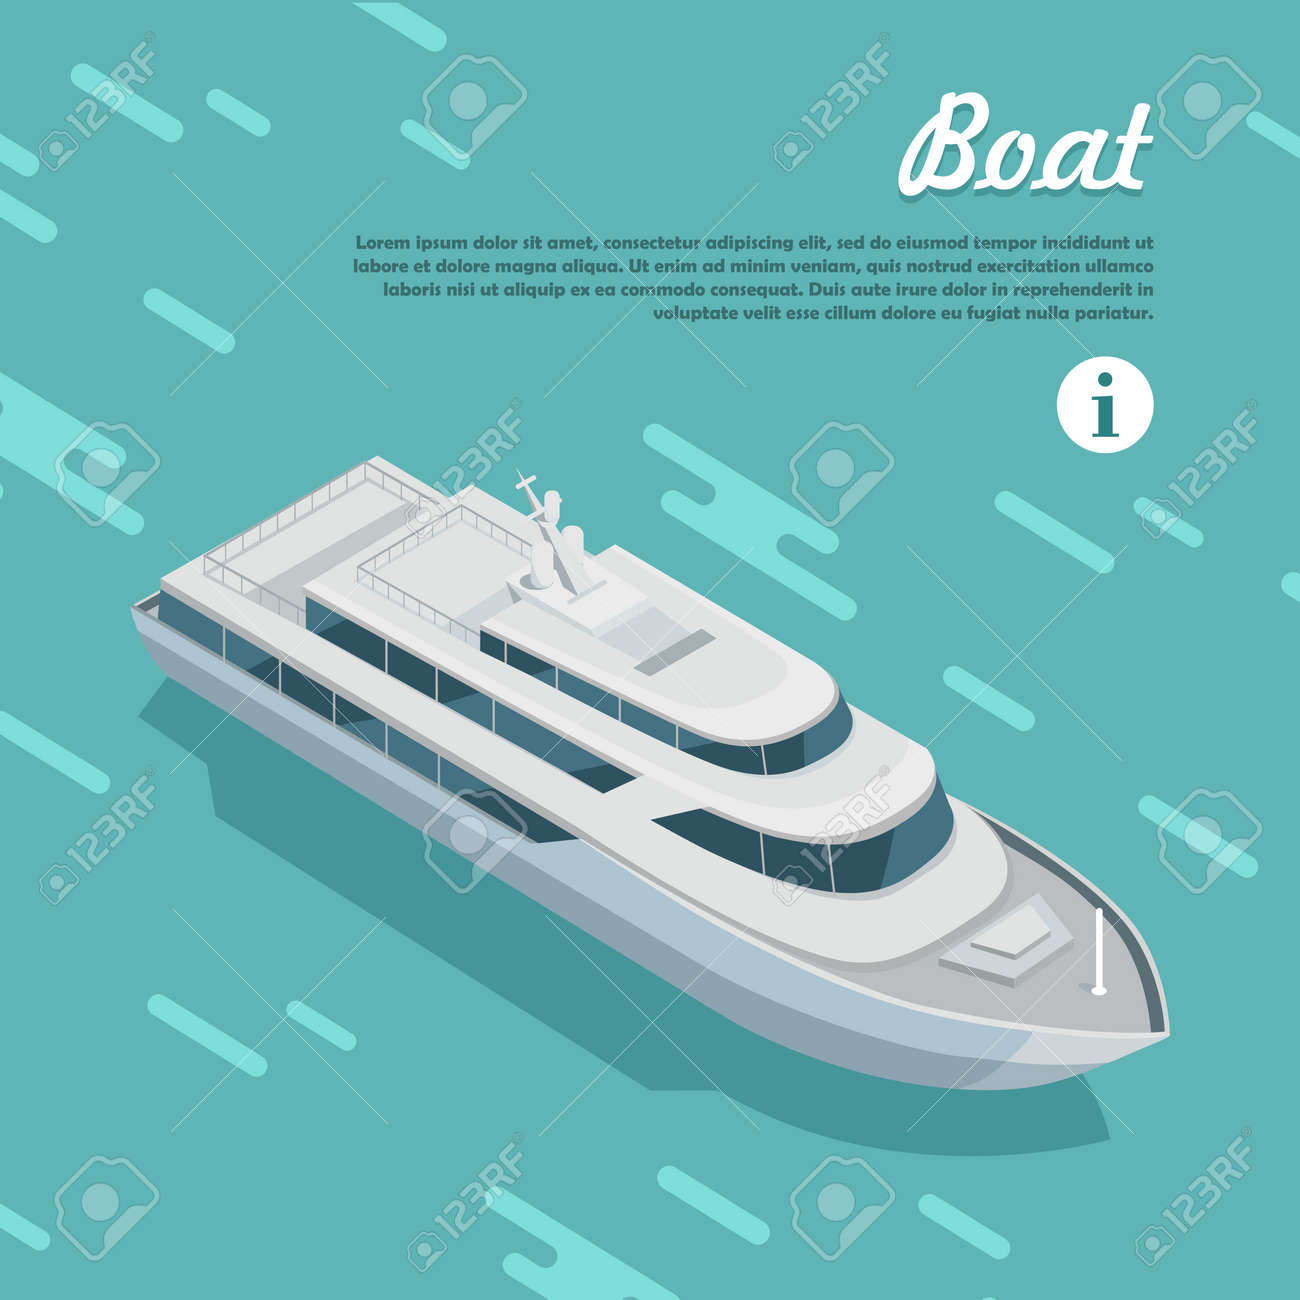 Boat Sailing In Sea Boat Watercraft Designed To Float Plane - How can cruise ships float